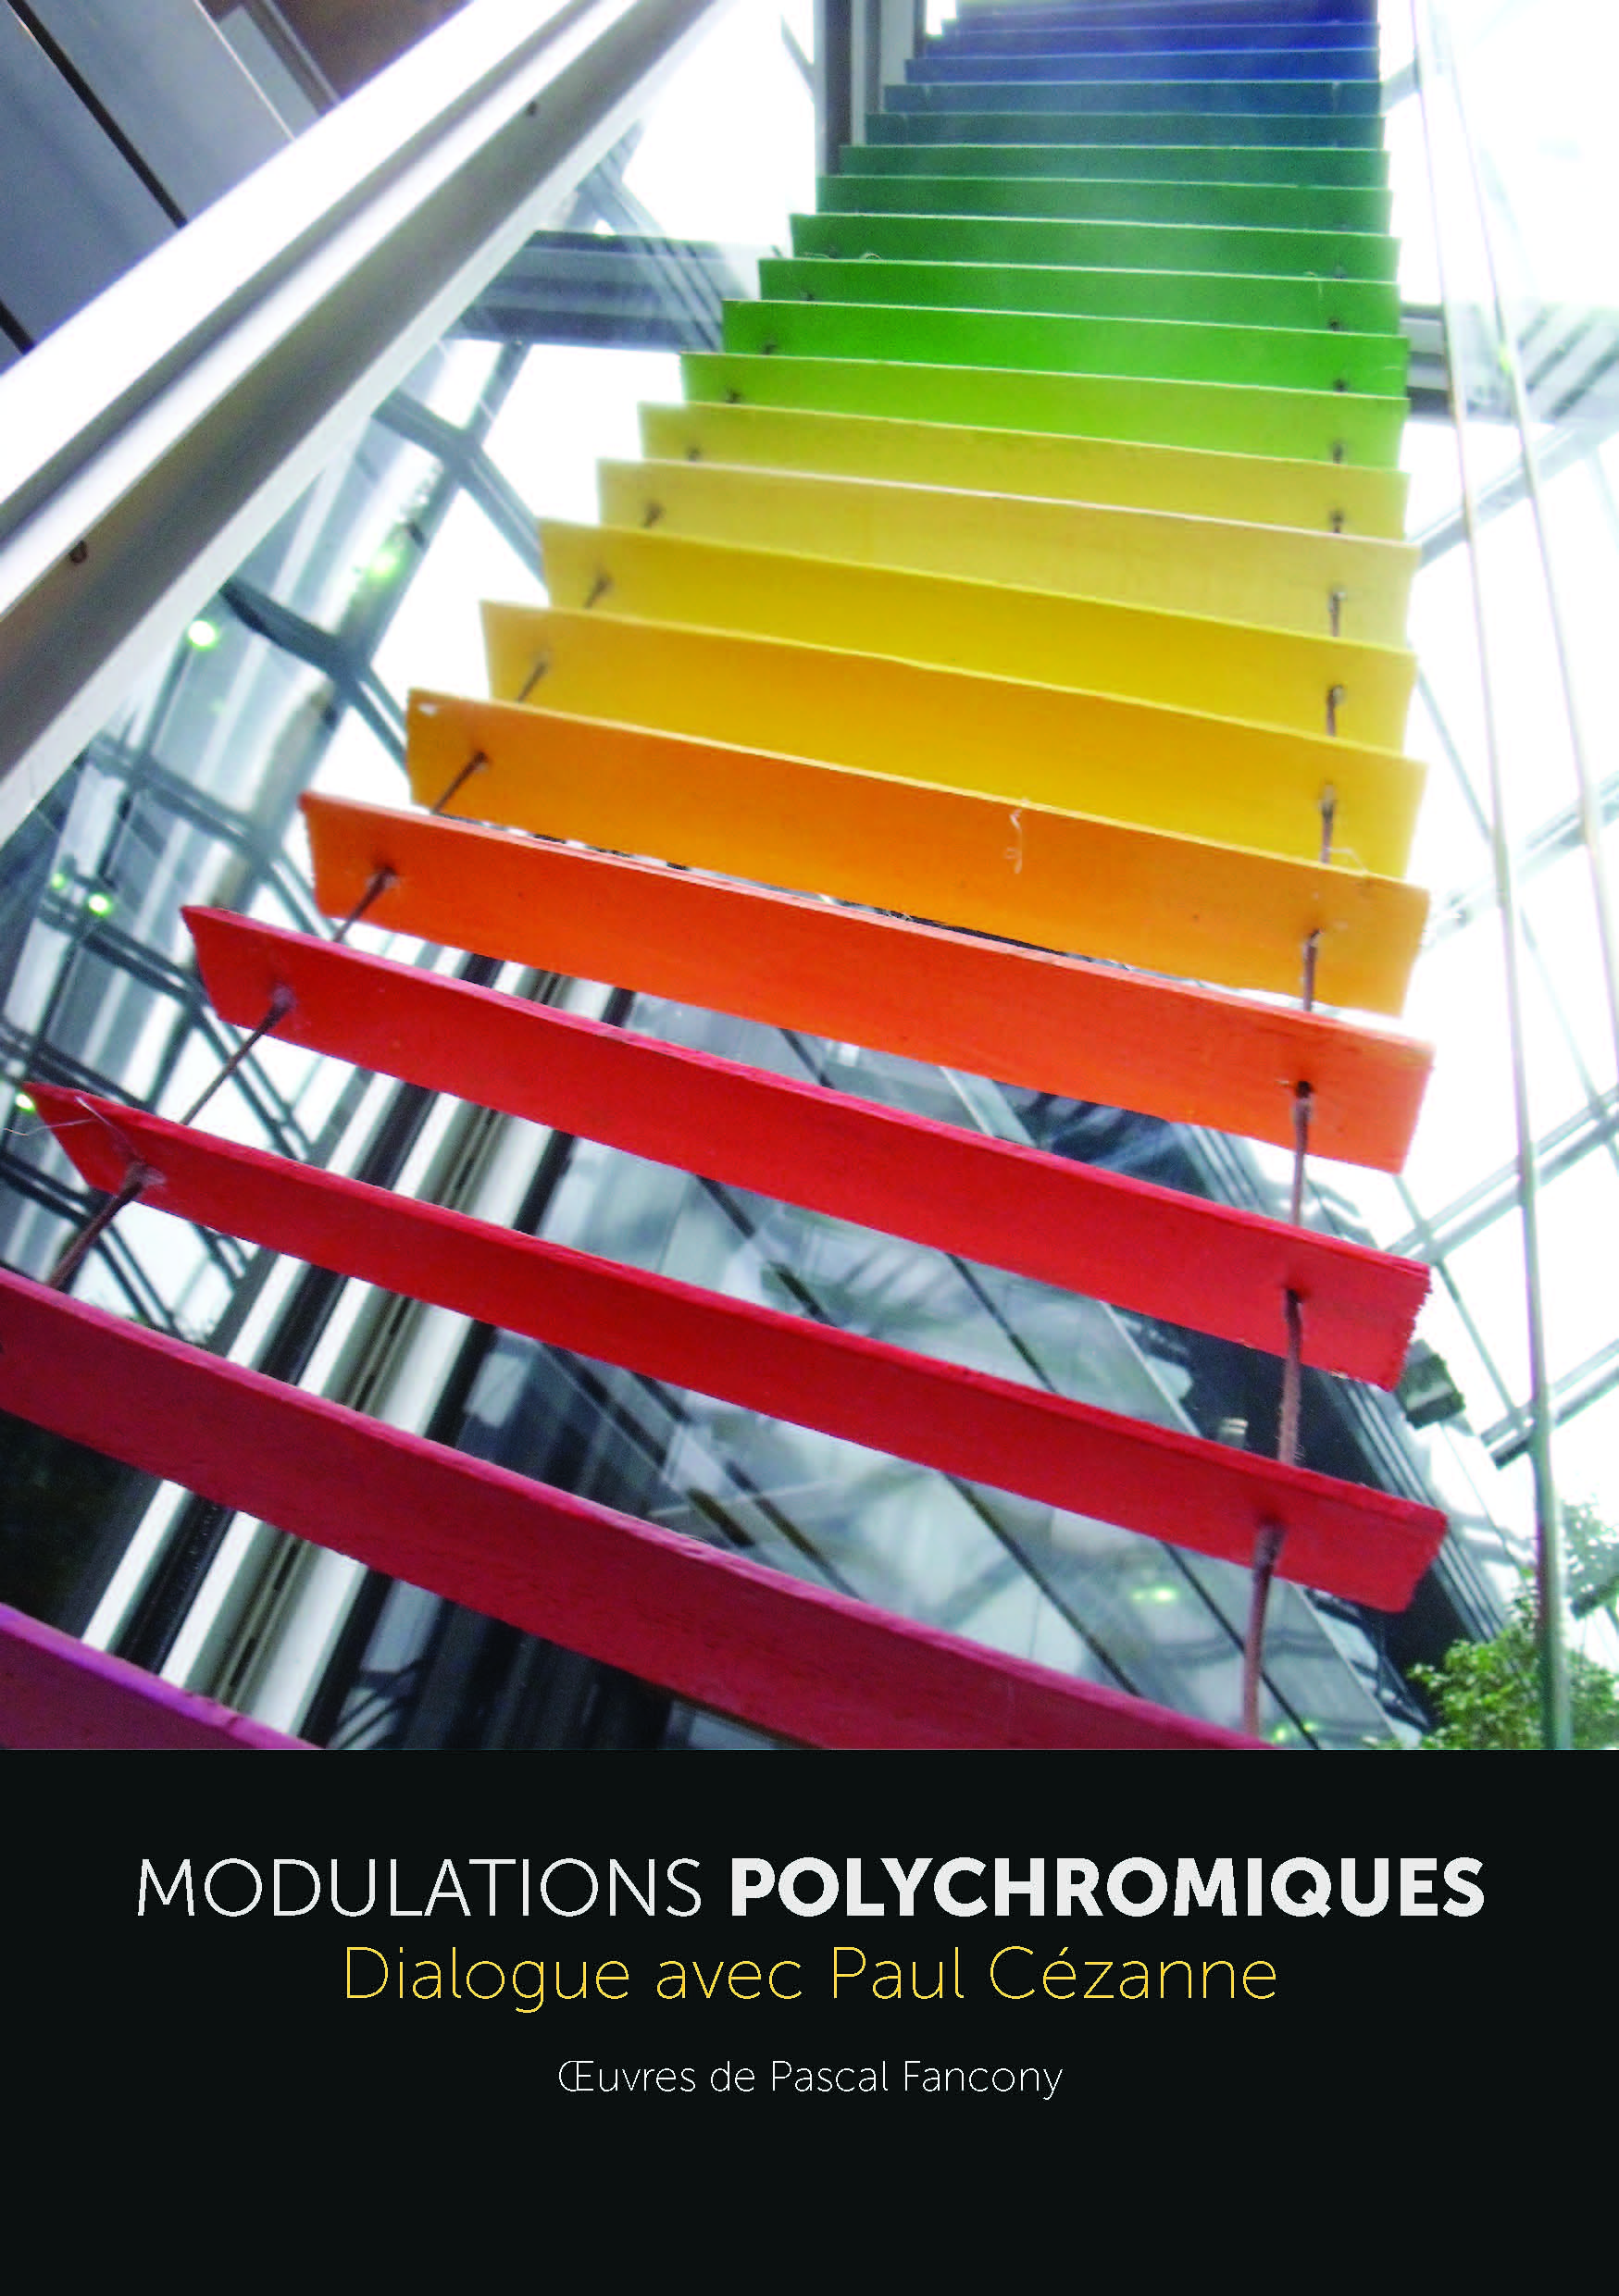 R. modulations chromatique, 2010